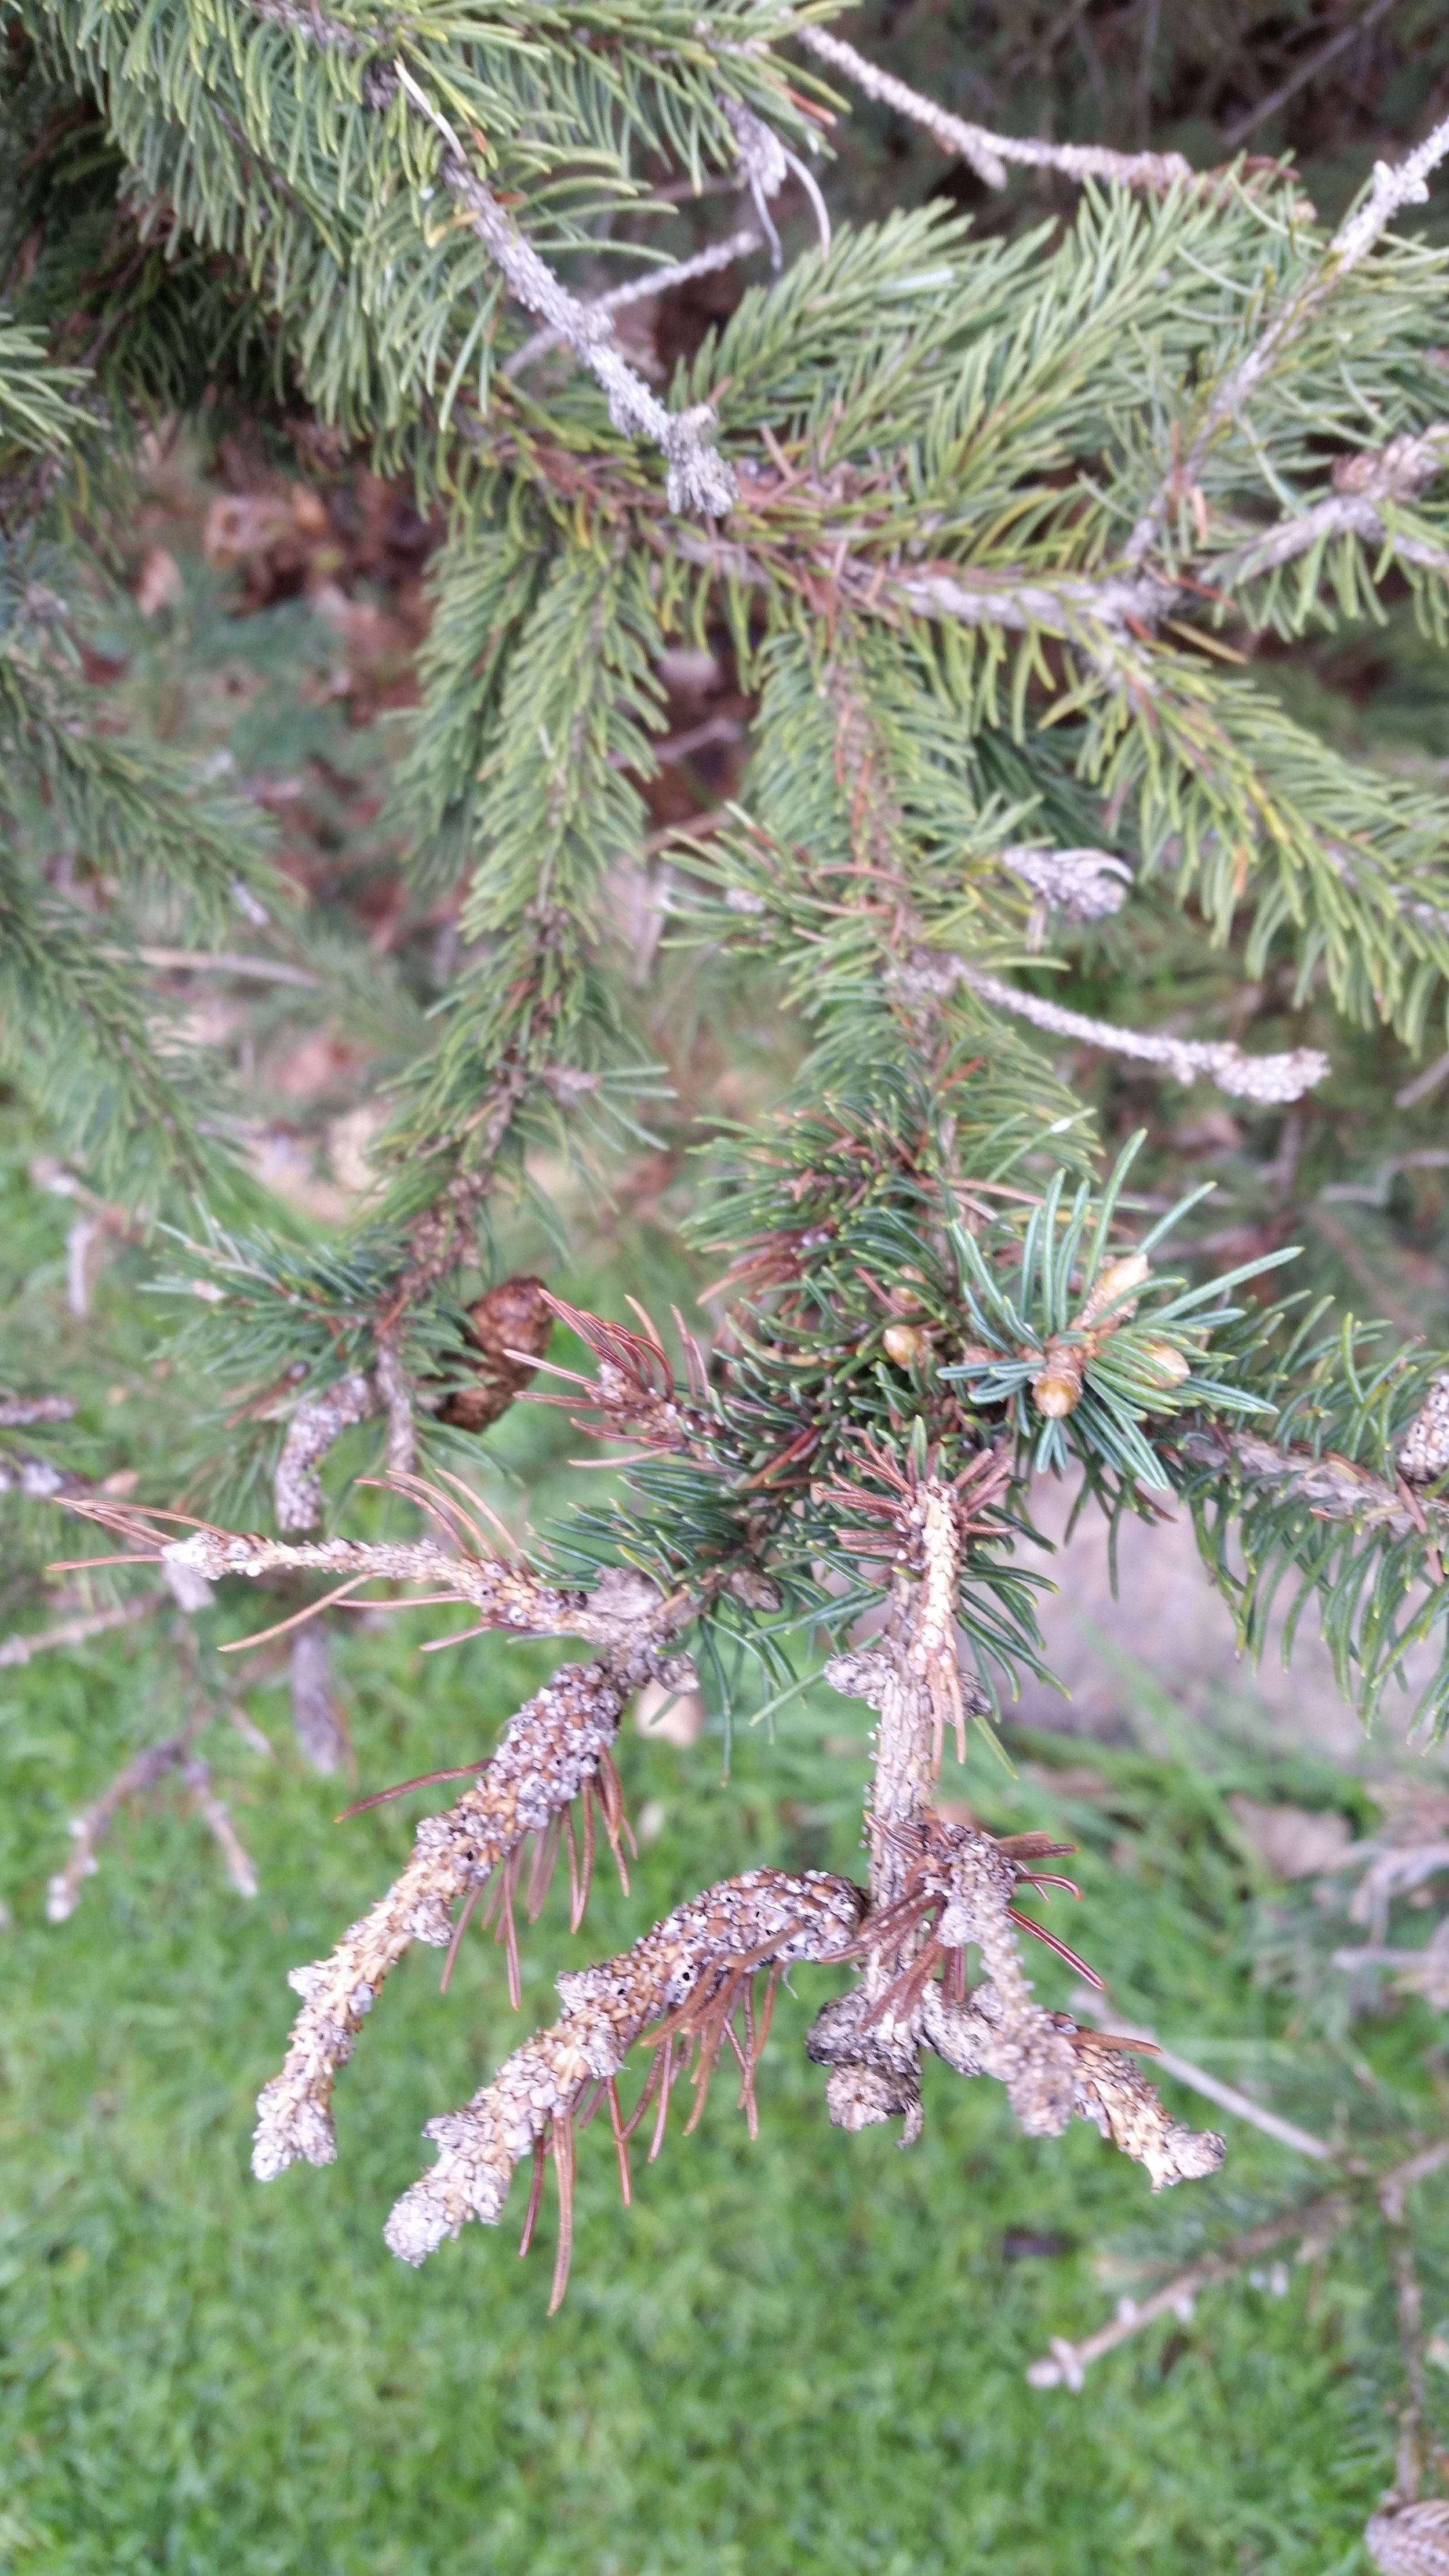 Spruce gall midges causing deformity at branch tips